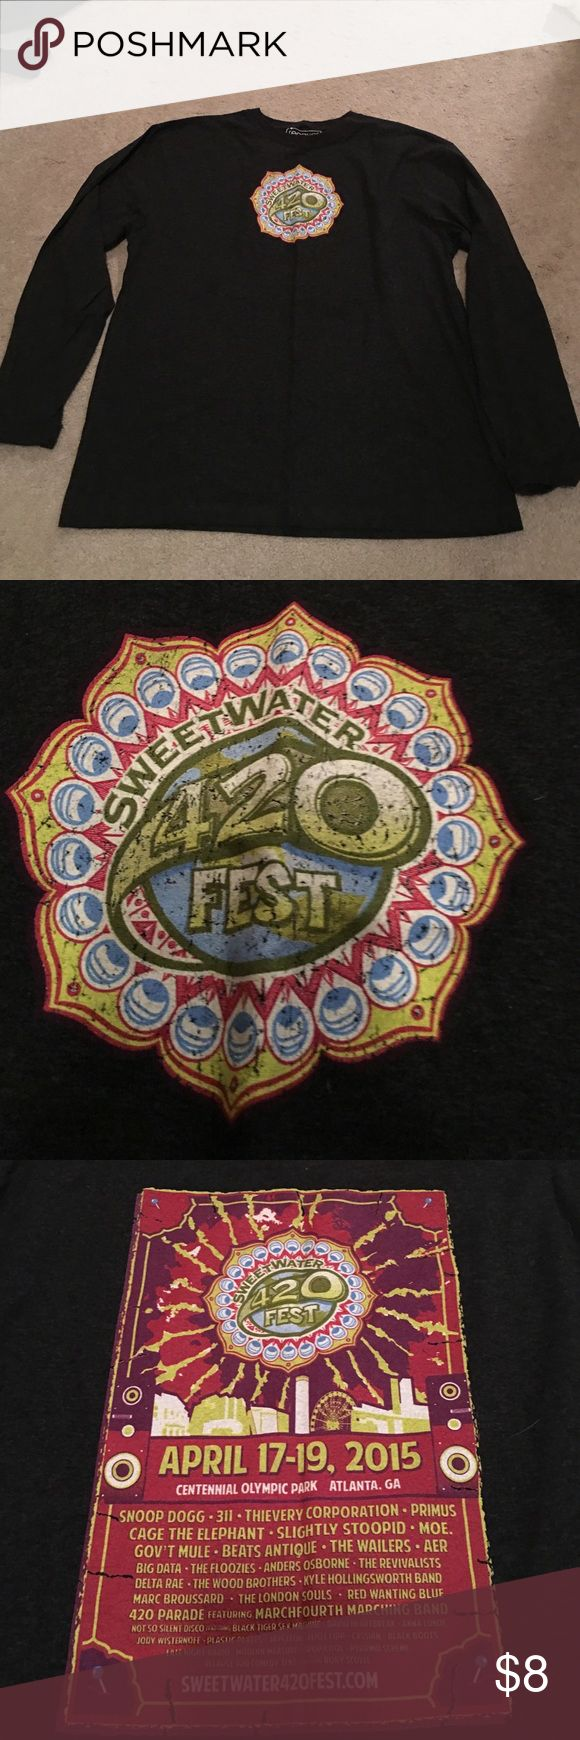 Sweetwater 420 fest shirt Super soft long sleeved dark gray shirt from Sweetwater 420 fest 2015. Tops Tees - Long Sleeve